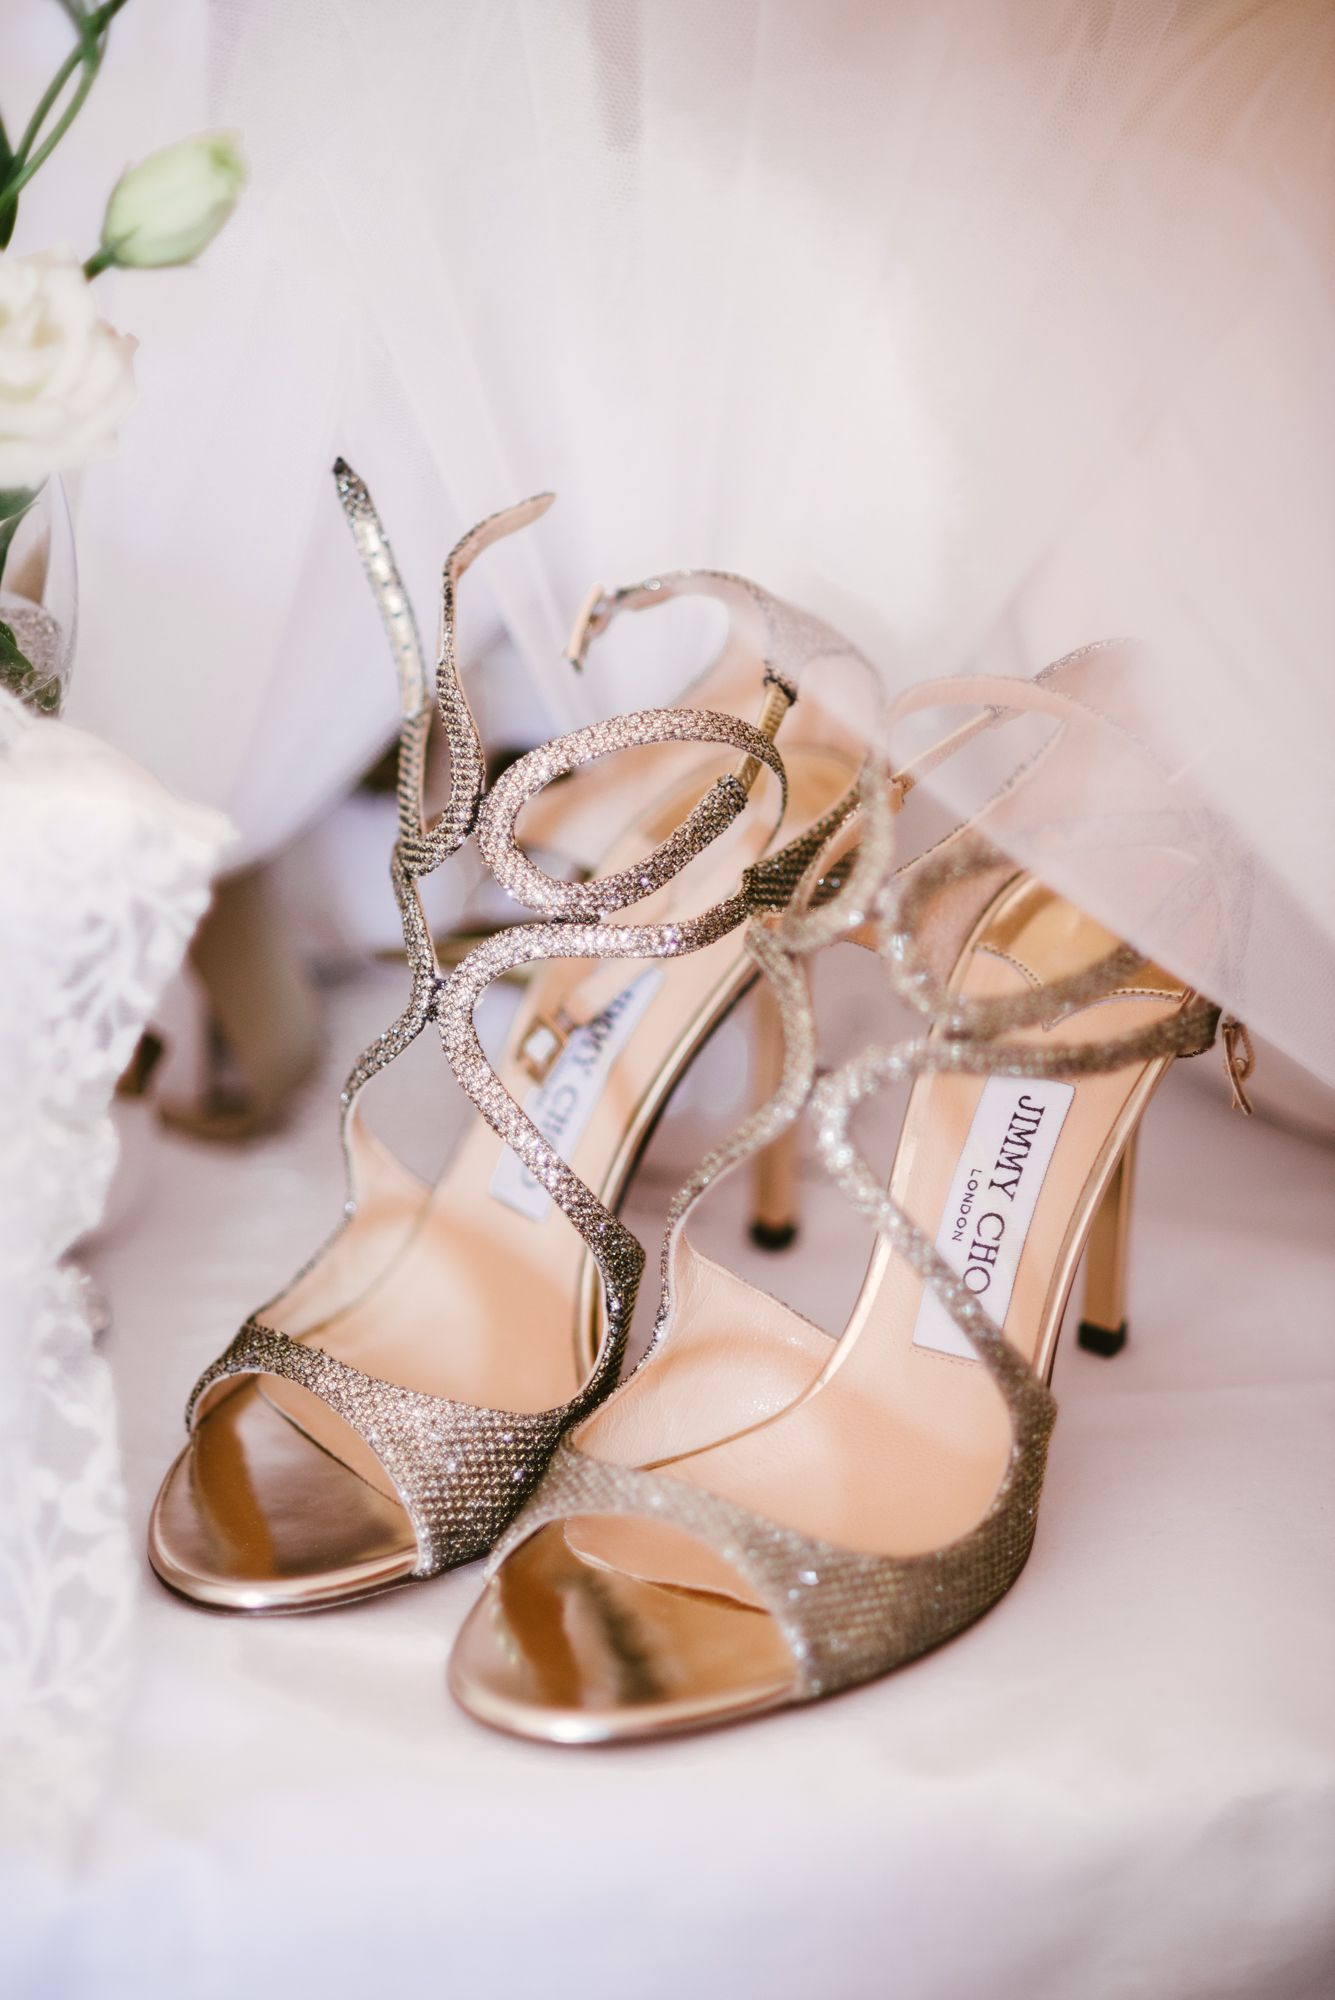 Scarpe Sposa Oro.Sparkly Gold Wedding Shoes By Jimmy Choo Perfect Luxury Bride